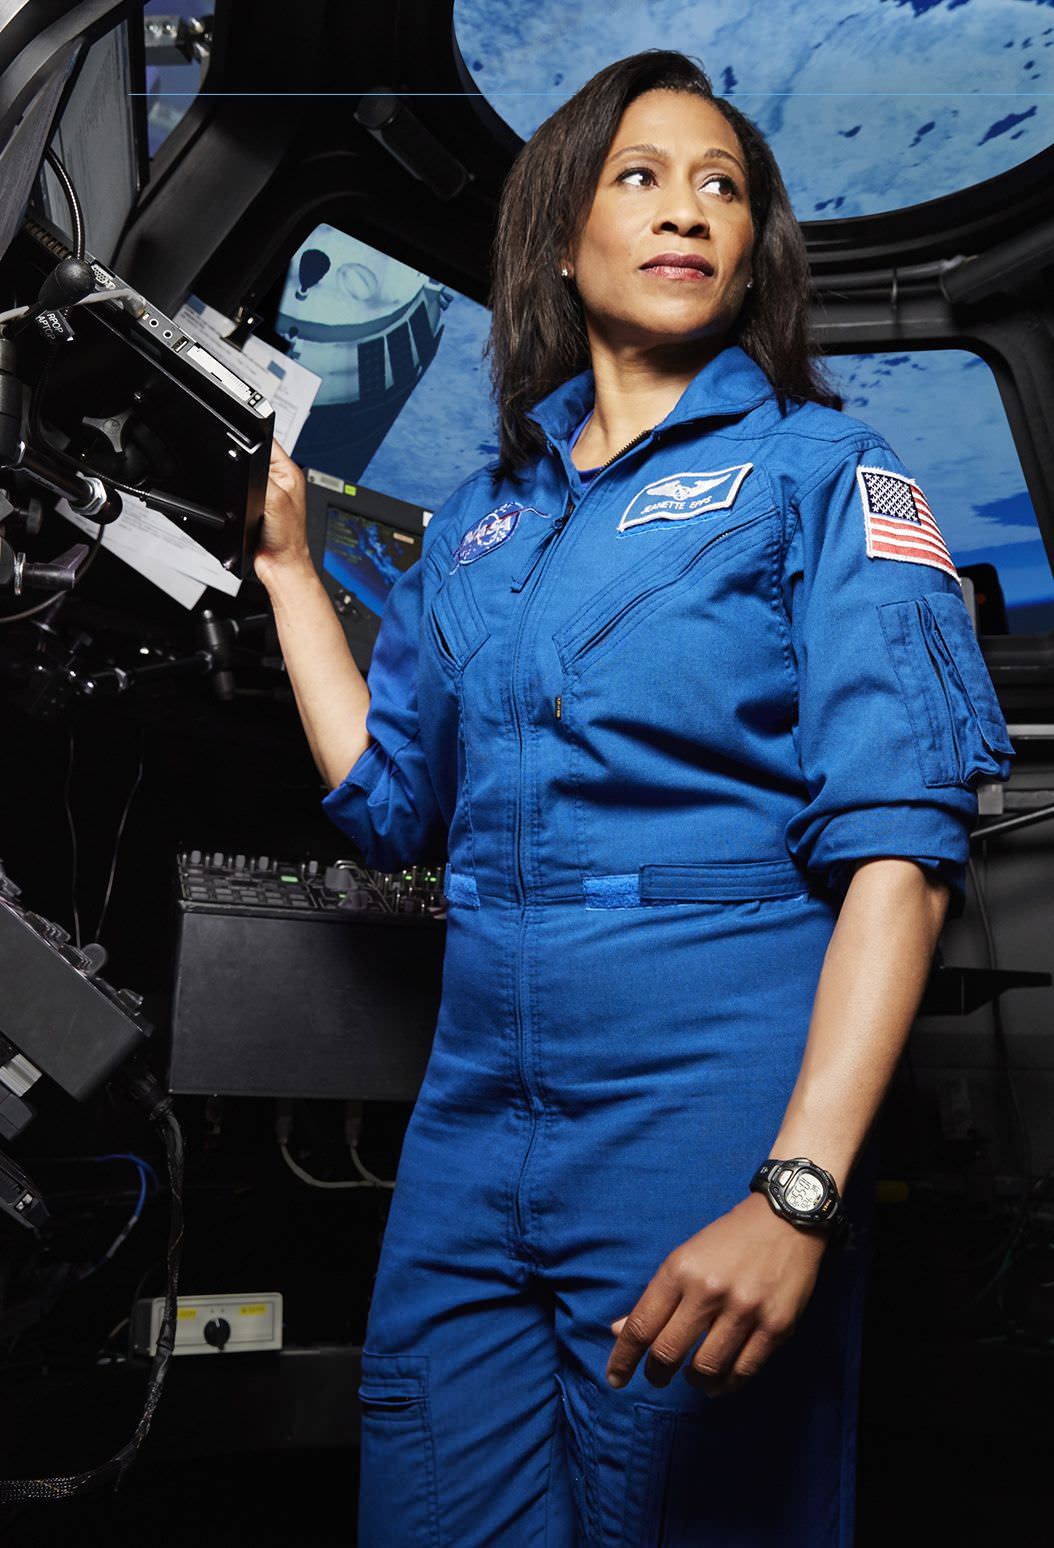 female astronaut epps - photo #10